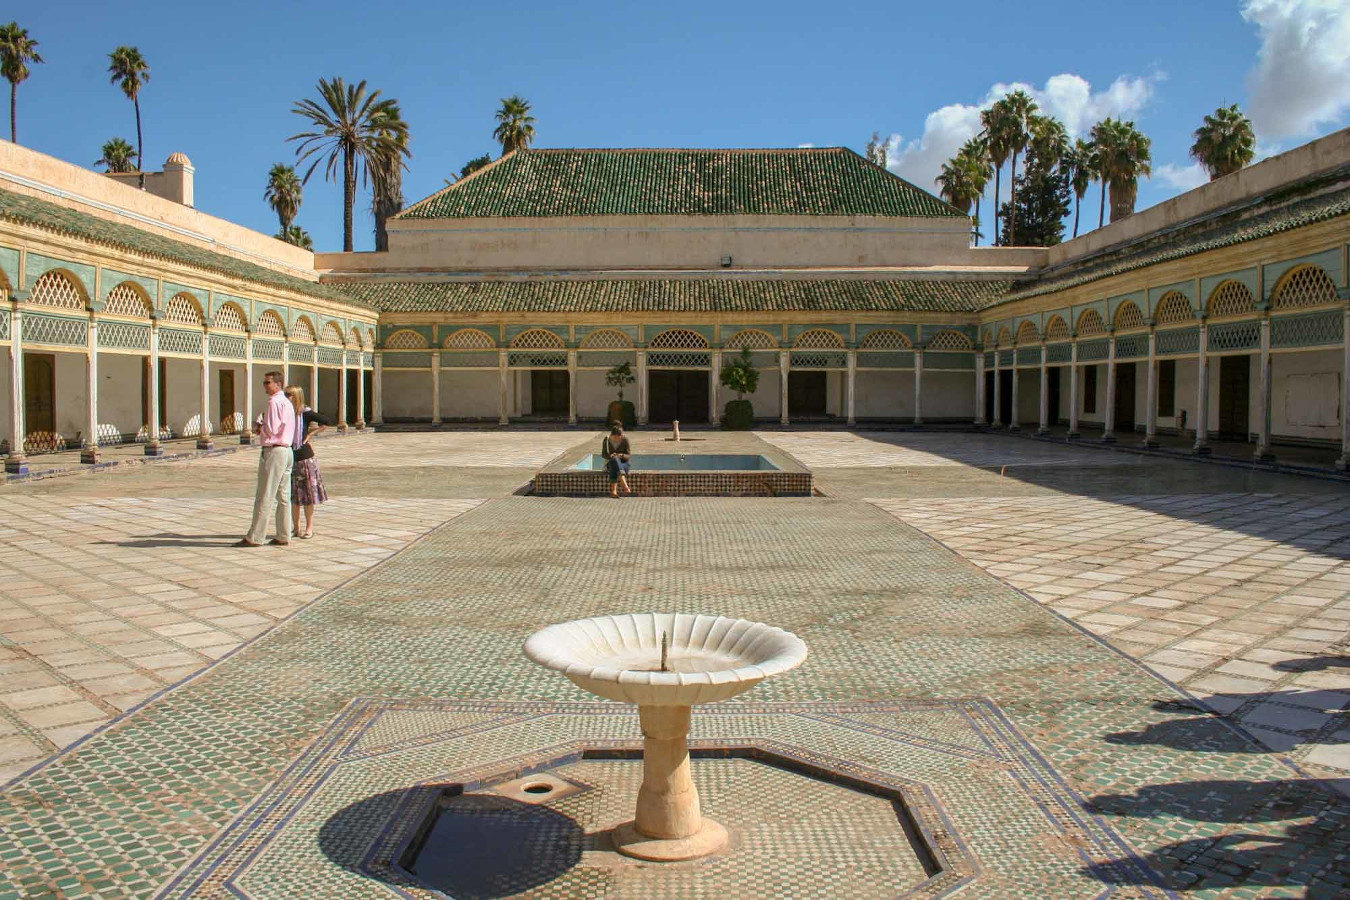 The Bahia Palace is one of the best places things to see in Marrakech, a city that is one of the best to include on your Morocco itinerary for 7 days